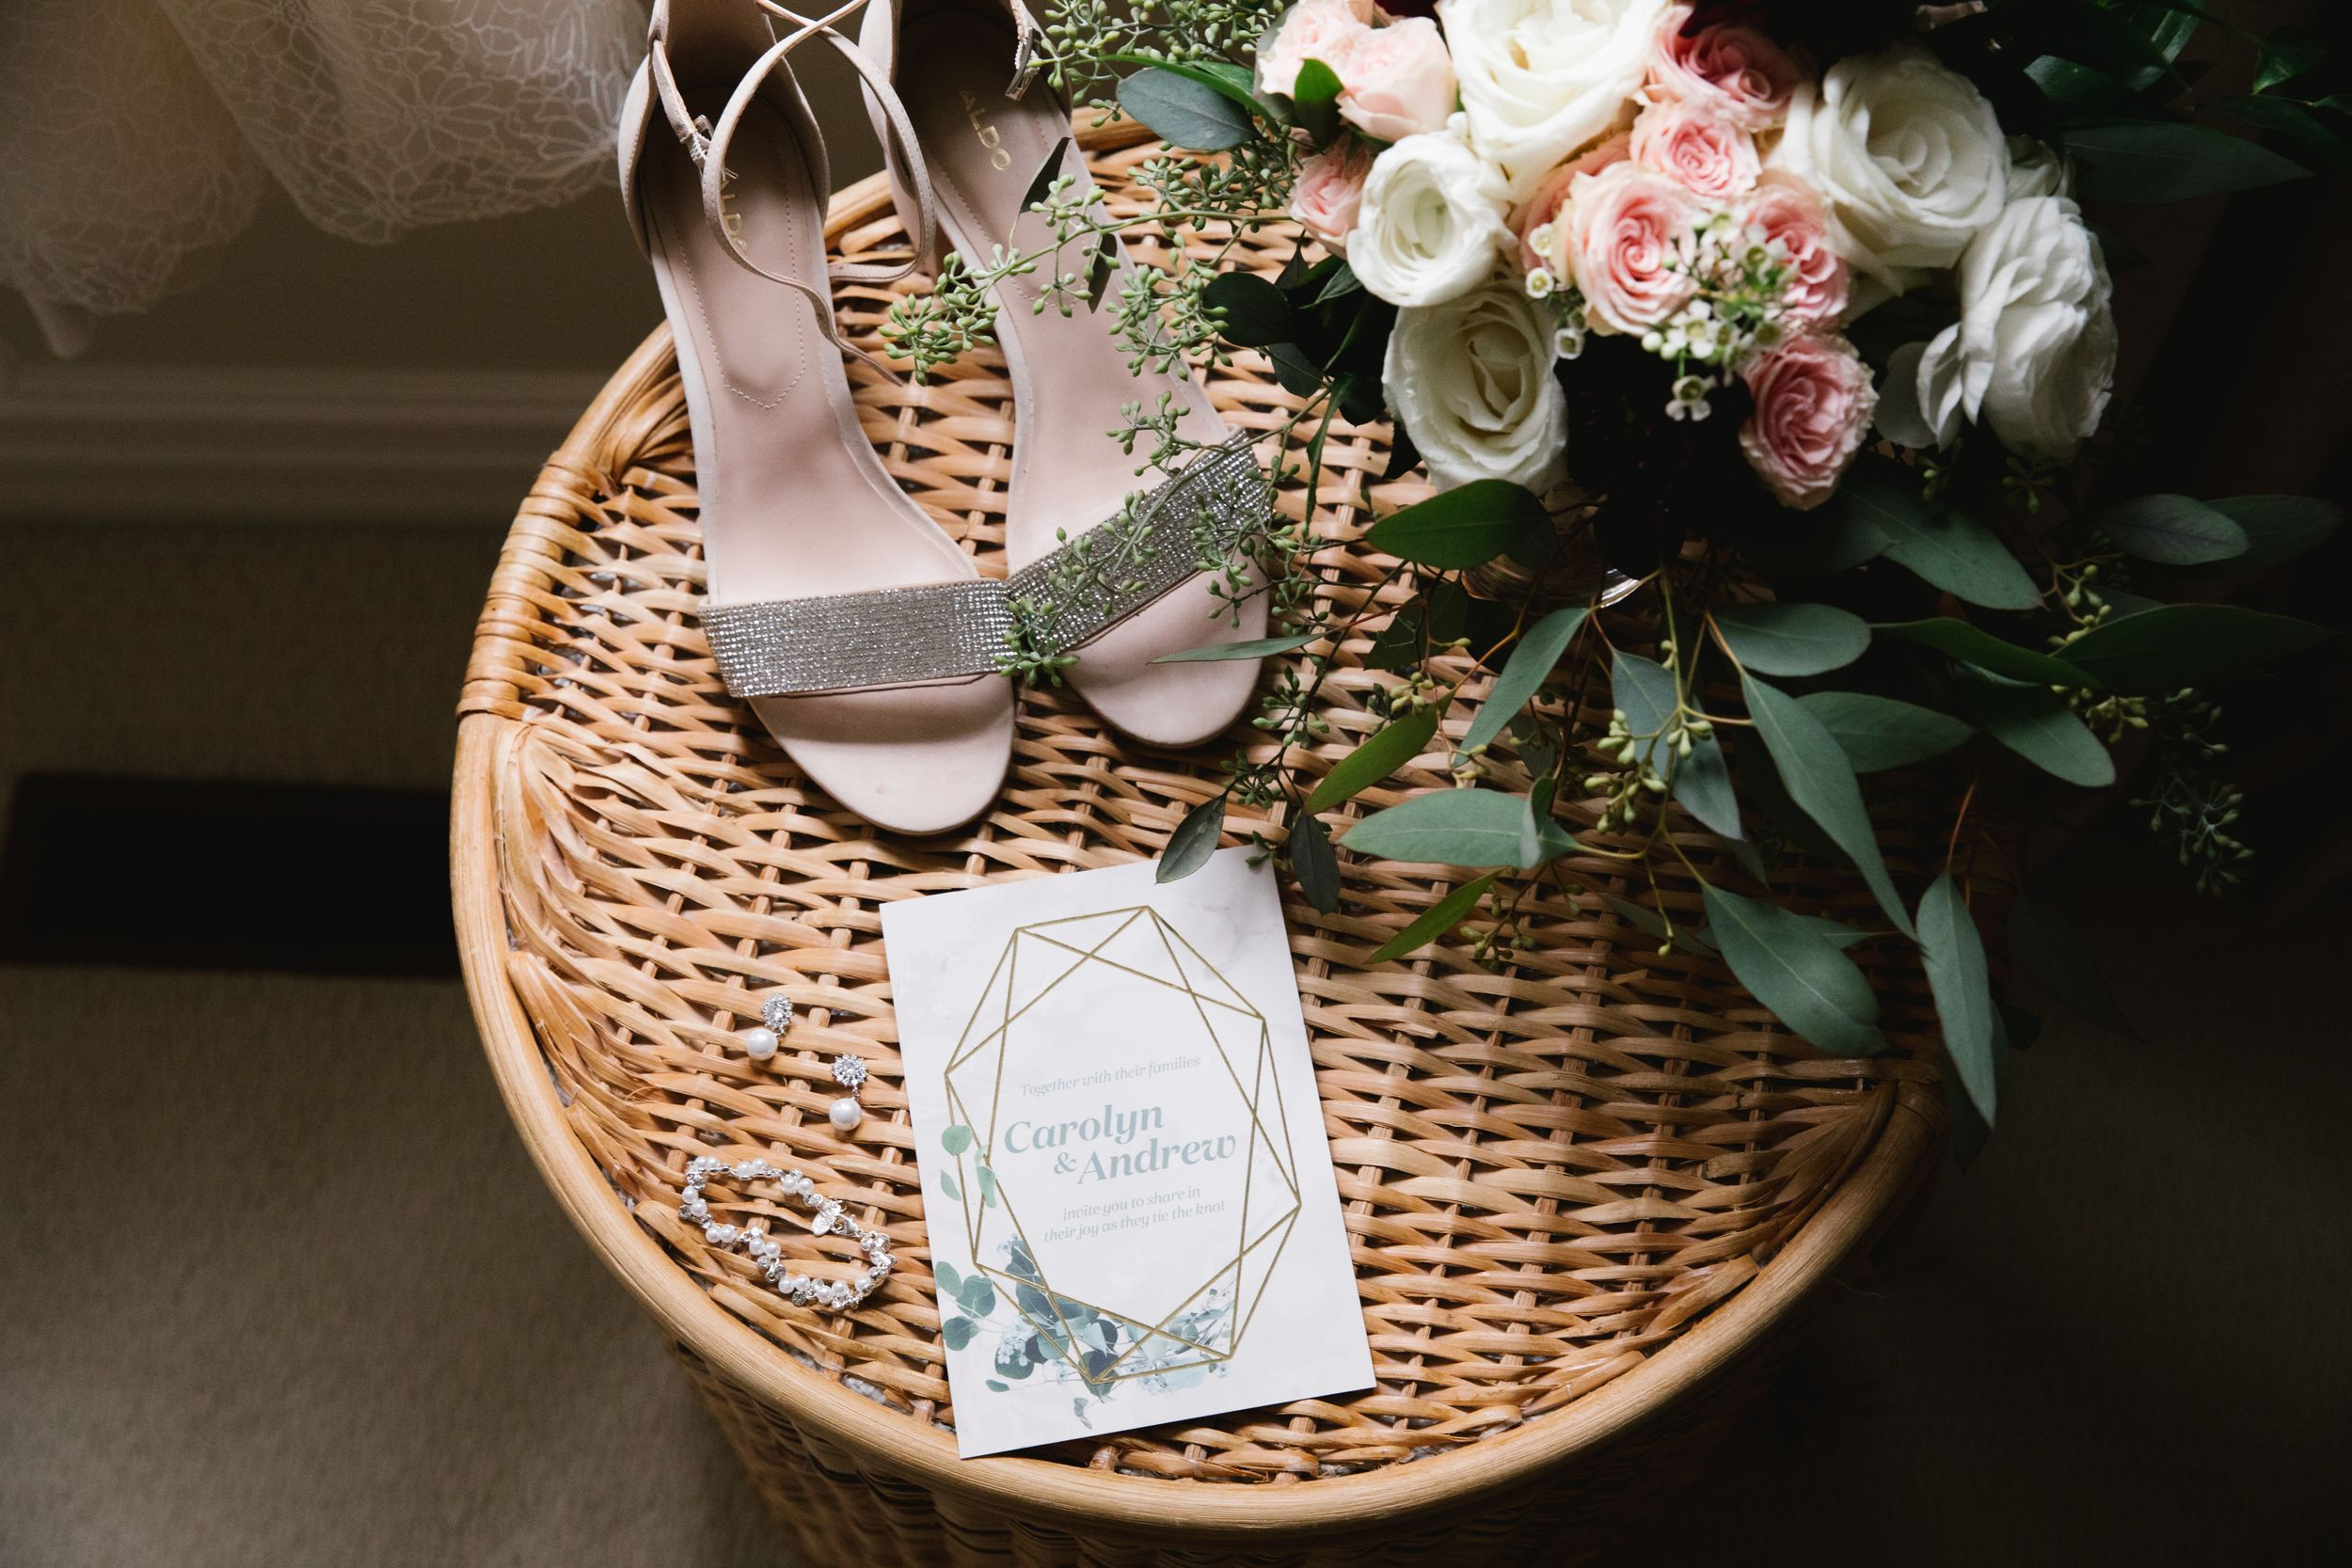 wedding details, bridal shoes, invitation, jewelry and bouquet on a wicker hamper